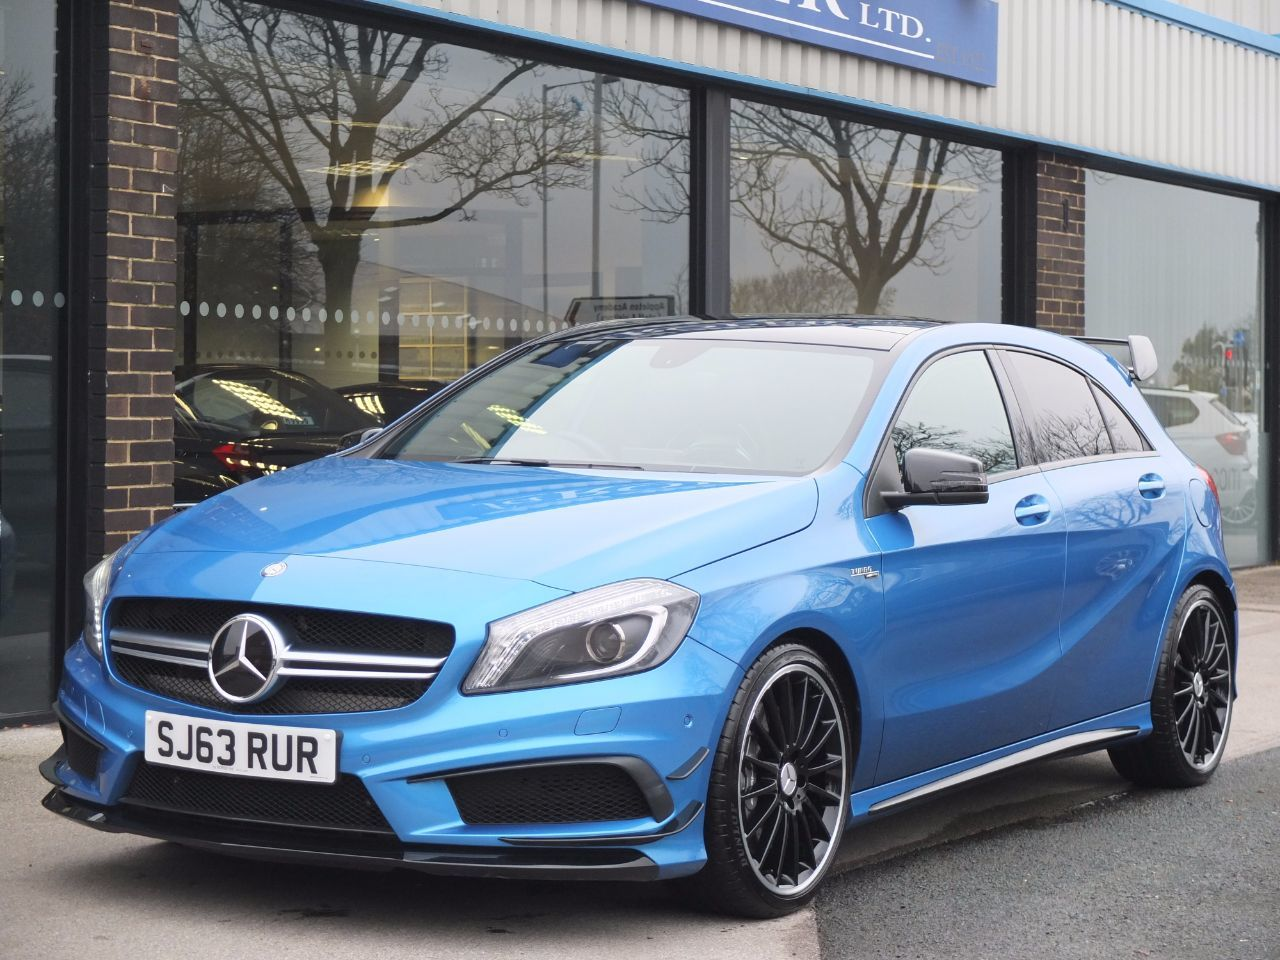 Mercedes-Benz A Class 2.0 A45 AMG 7G-DCT 4-MATIC Hatchback Petrol South Seas Blue MetallicMercedes-Benz A Class 2.0 A45 AMG 7G-DCT 4-MATIC Hatchback Petrol South Seas Blue Metallic at fa Roper Ltd Bradford